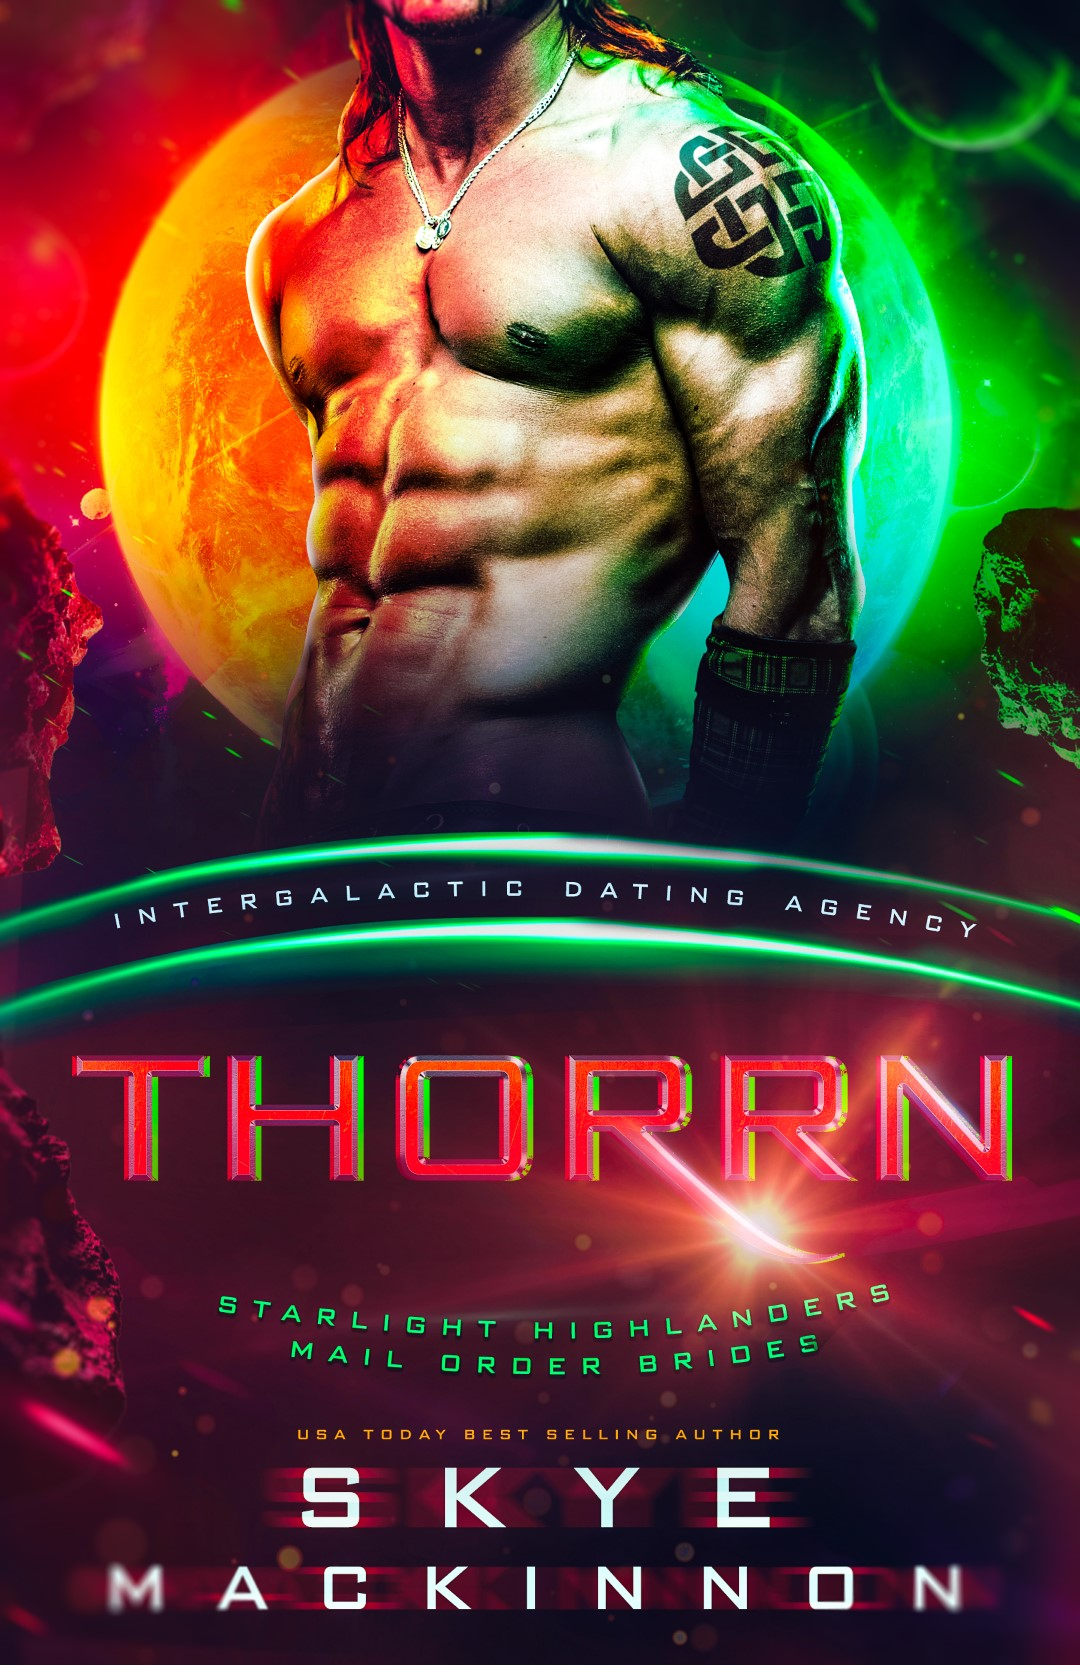 Thorrn cover